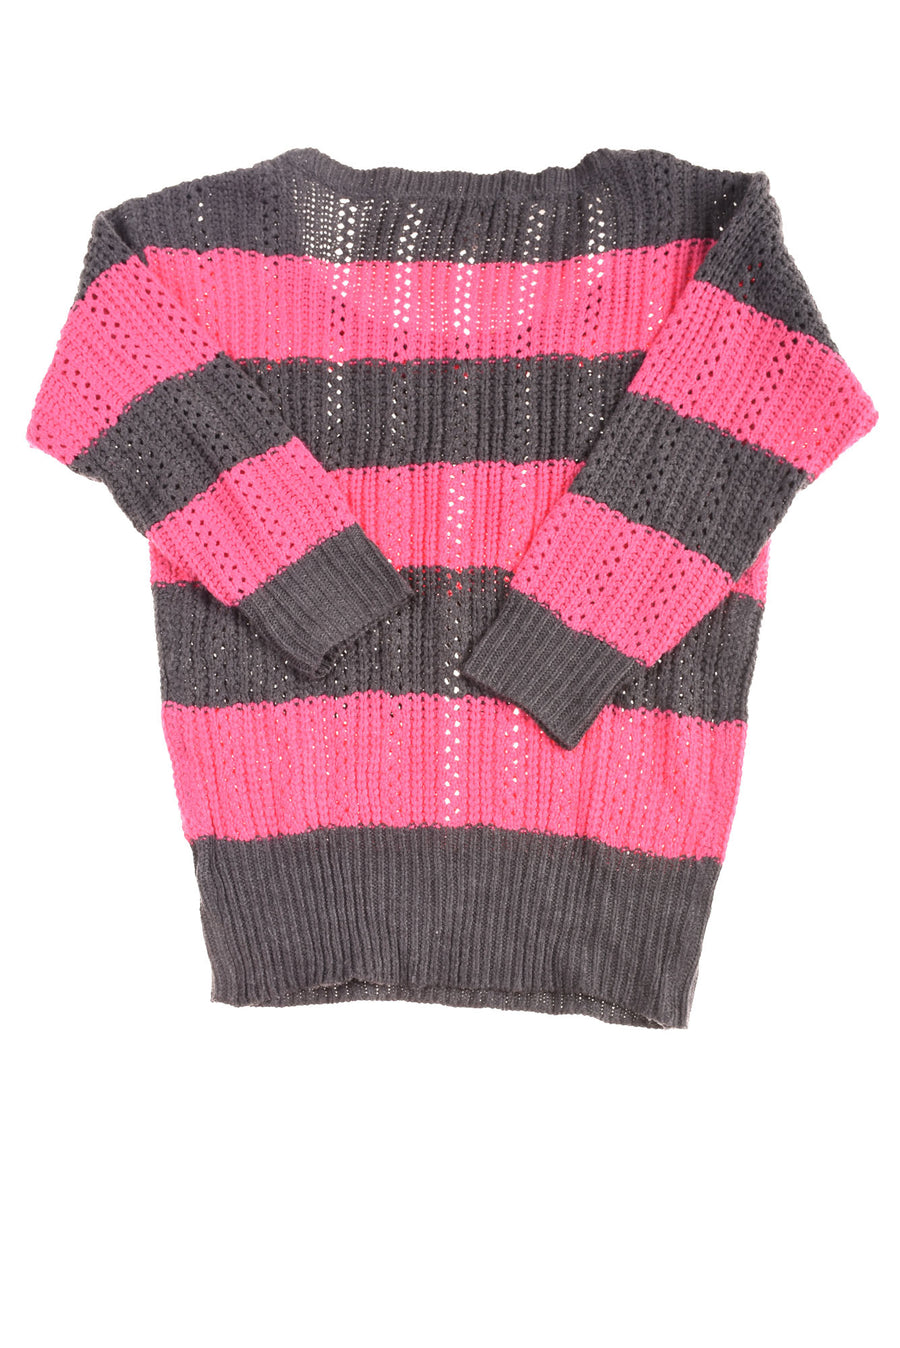 USED Arizona Jeans Women's Sweater Medium Pink & Gray